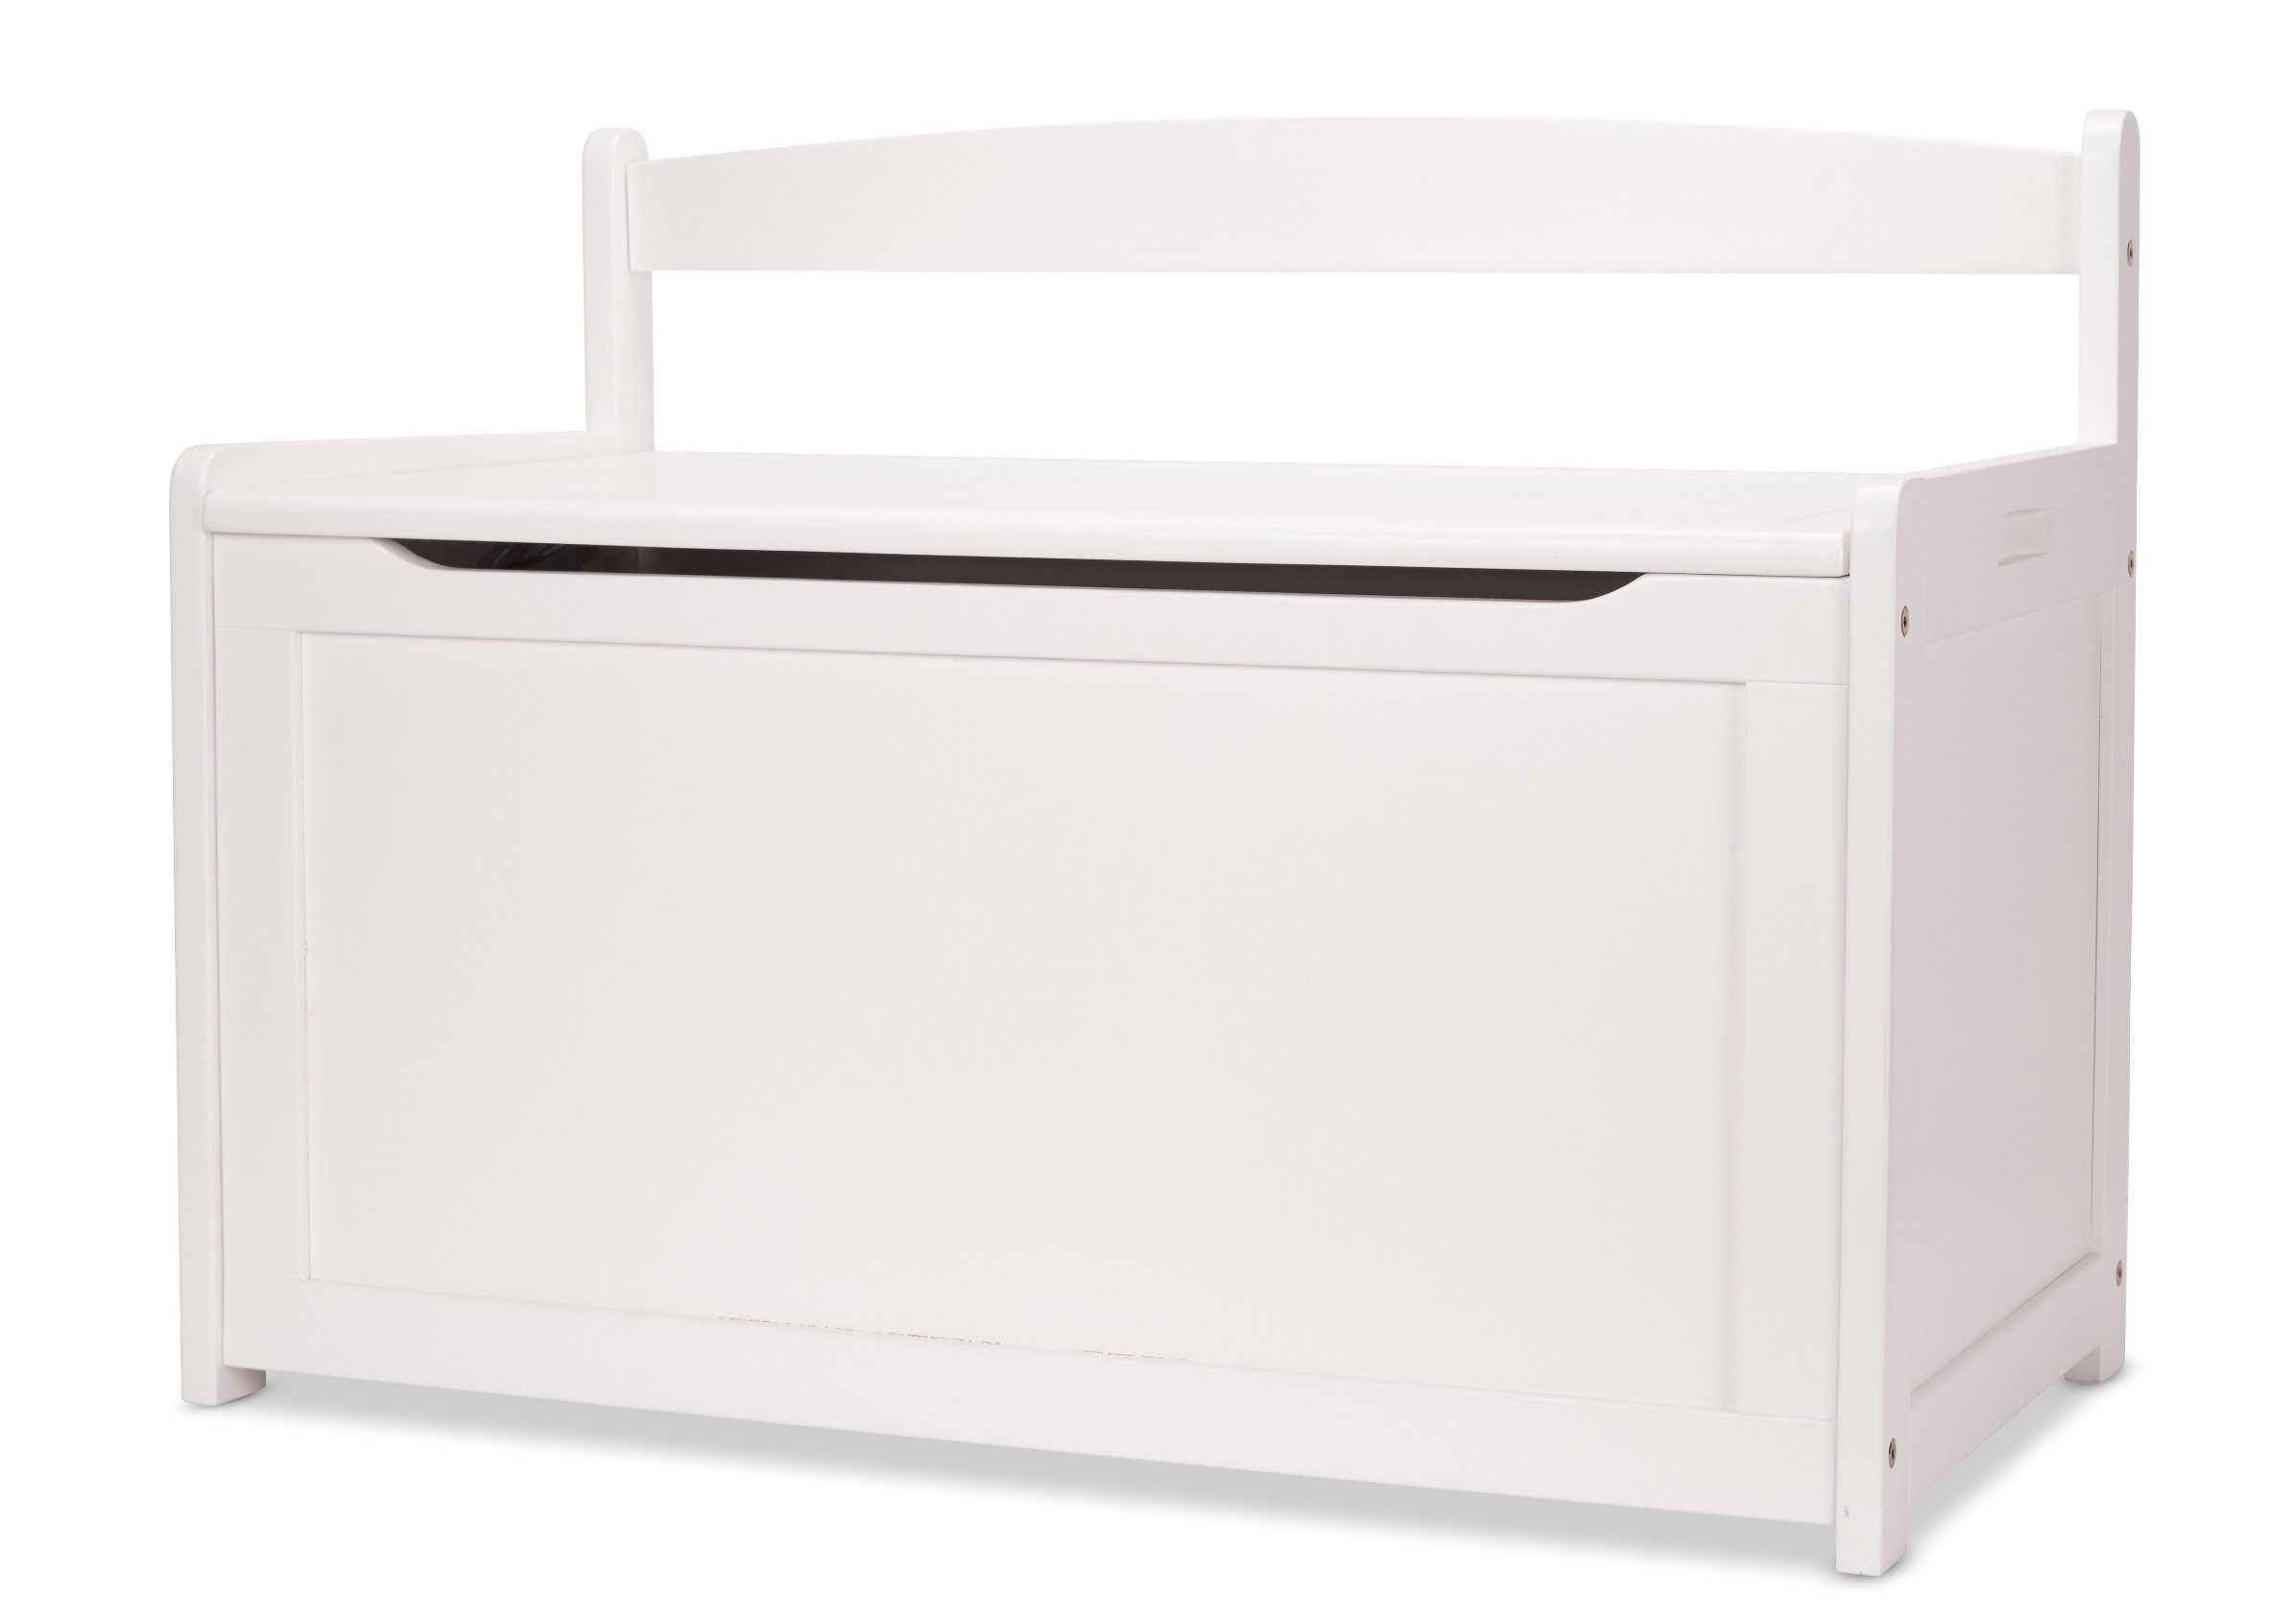 Melissa & Doug Toy Chest - White Children's Furniture